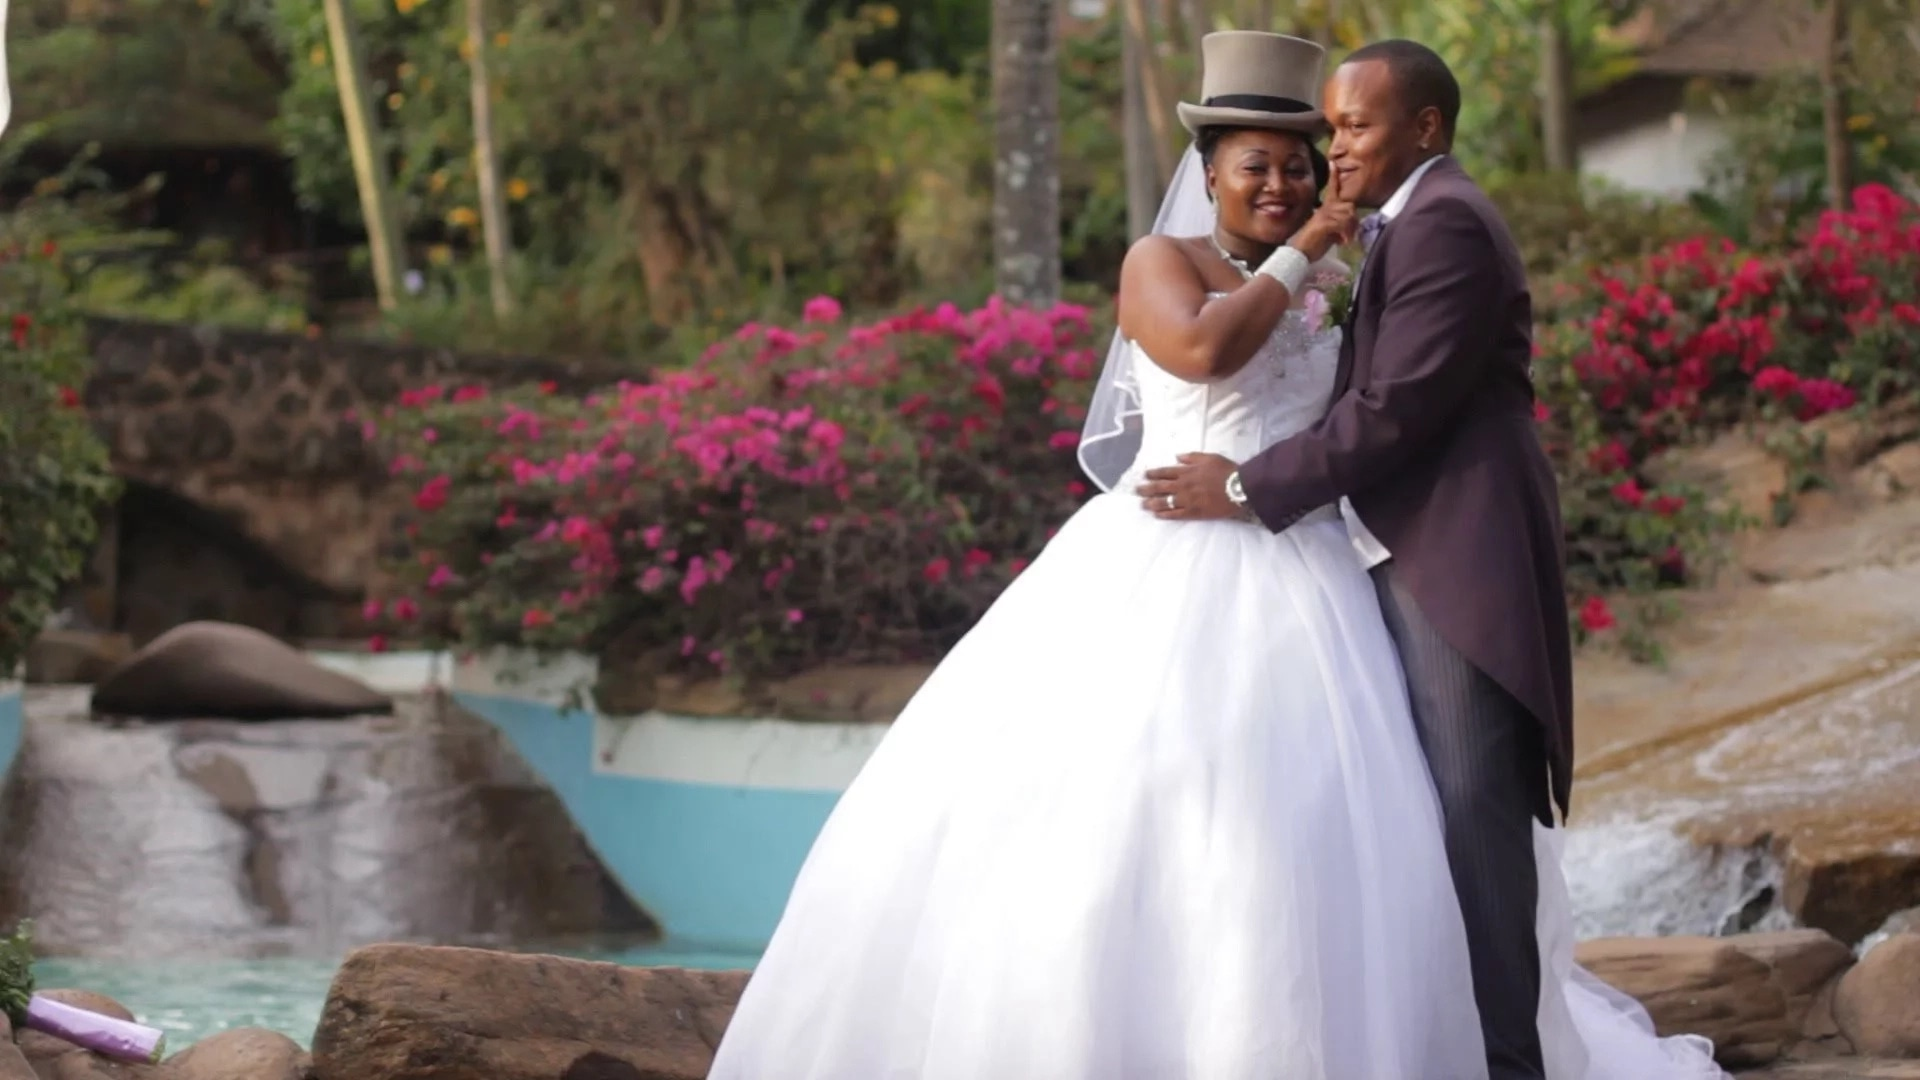 Wedding Gowns In Kenya And Their Prices Tuko Co Ke,V Neck Wedding Guest Dress Uk